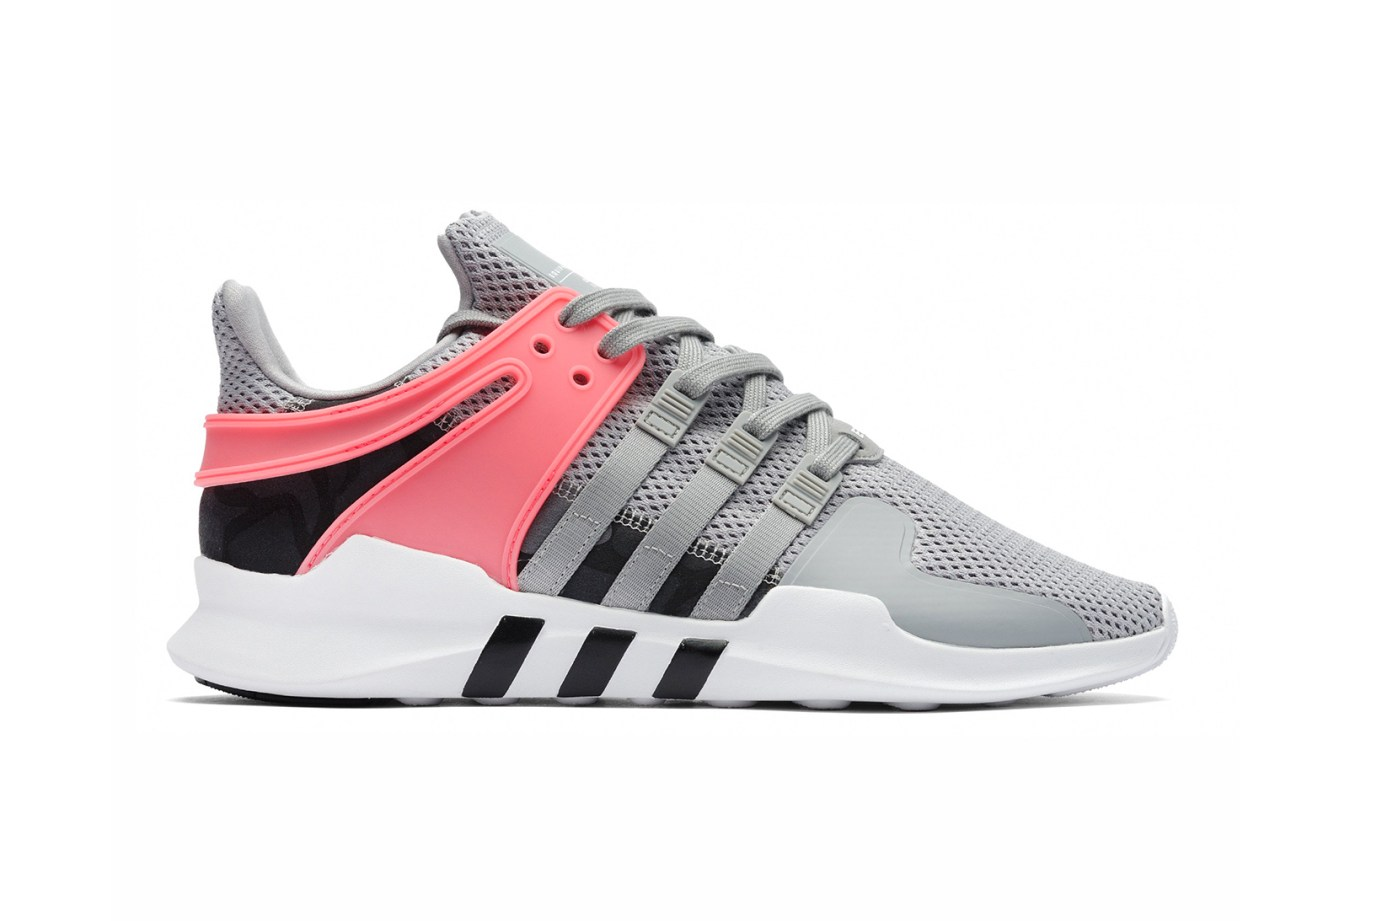 adidas-originals-eqt-support-adv-grey-turbo-red-1